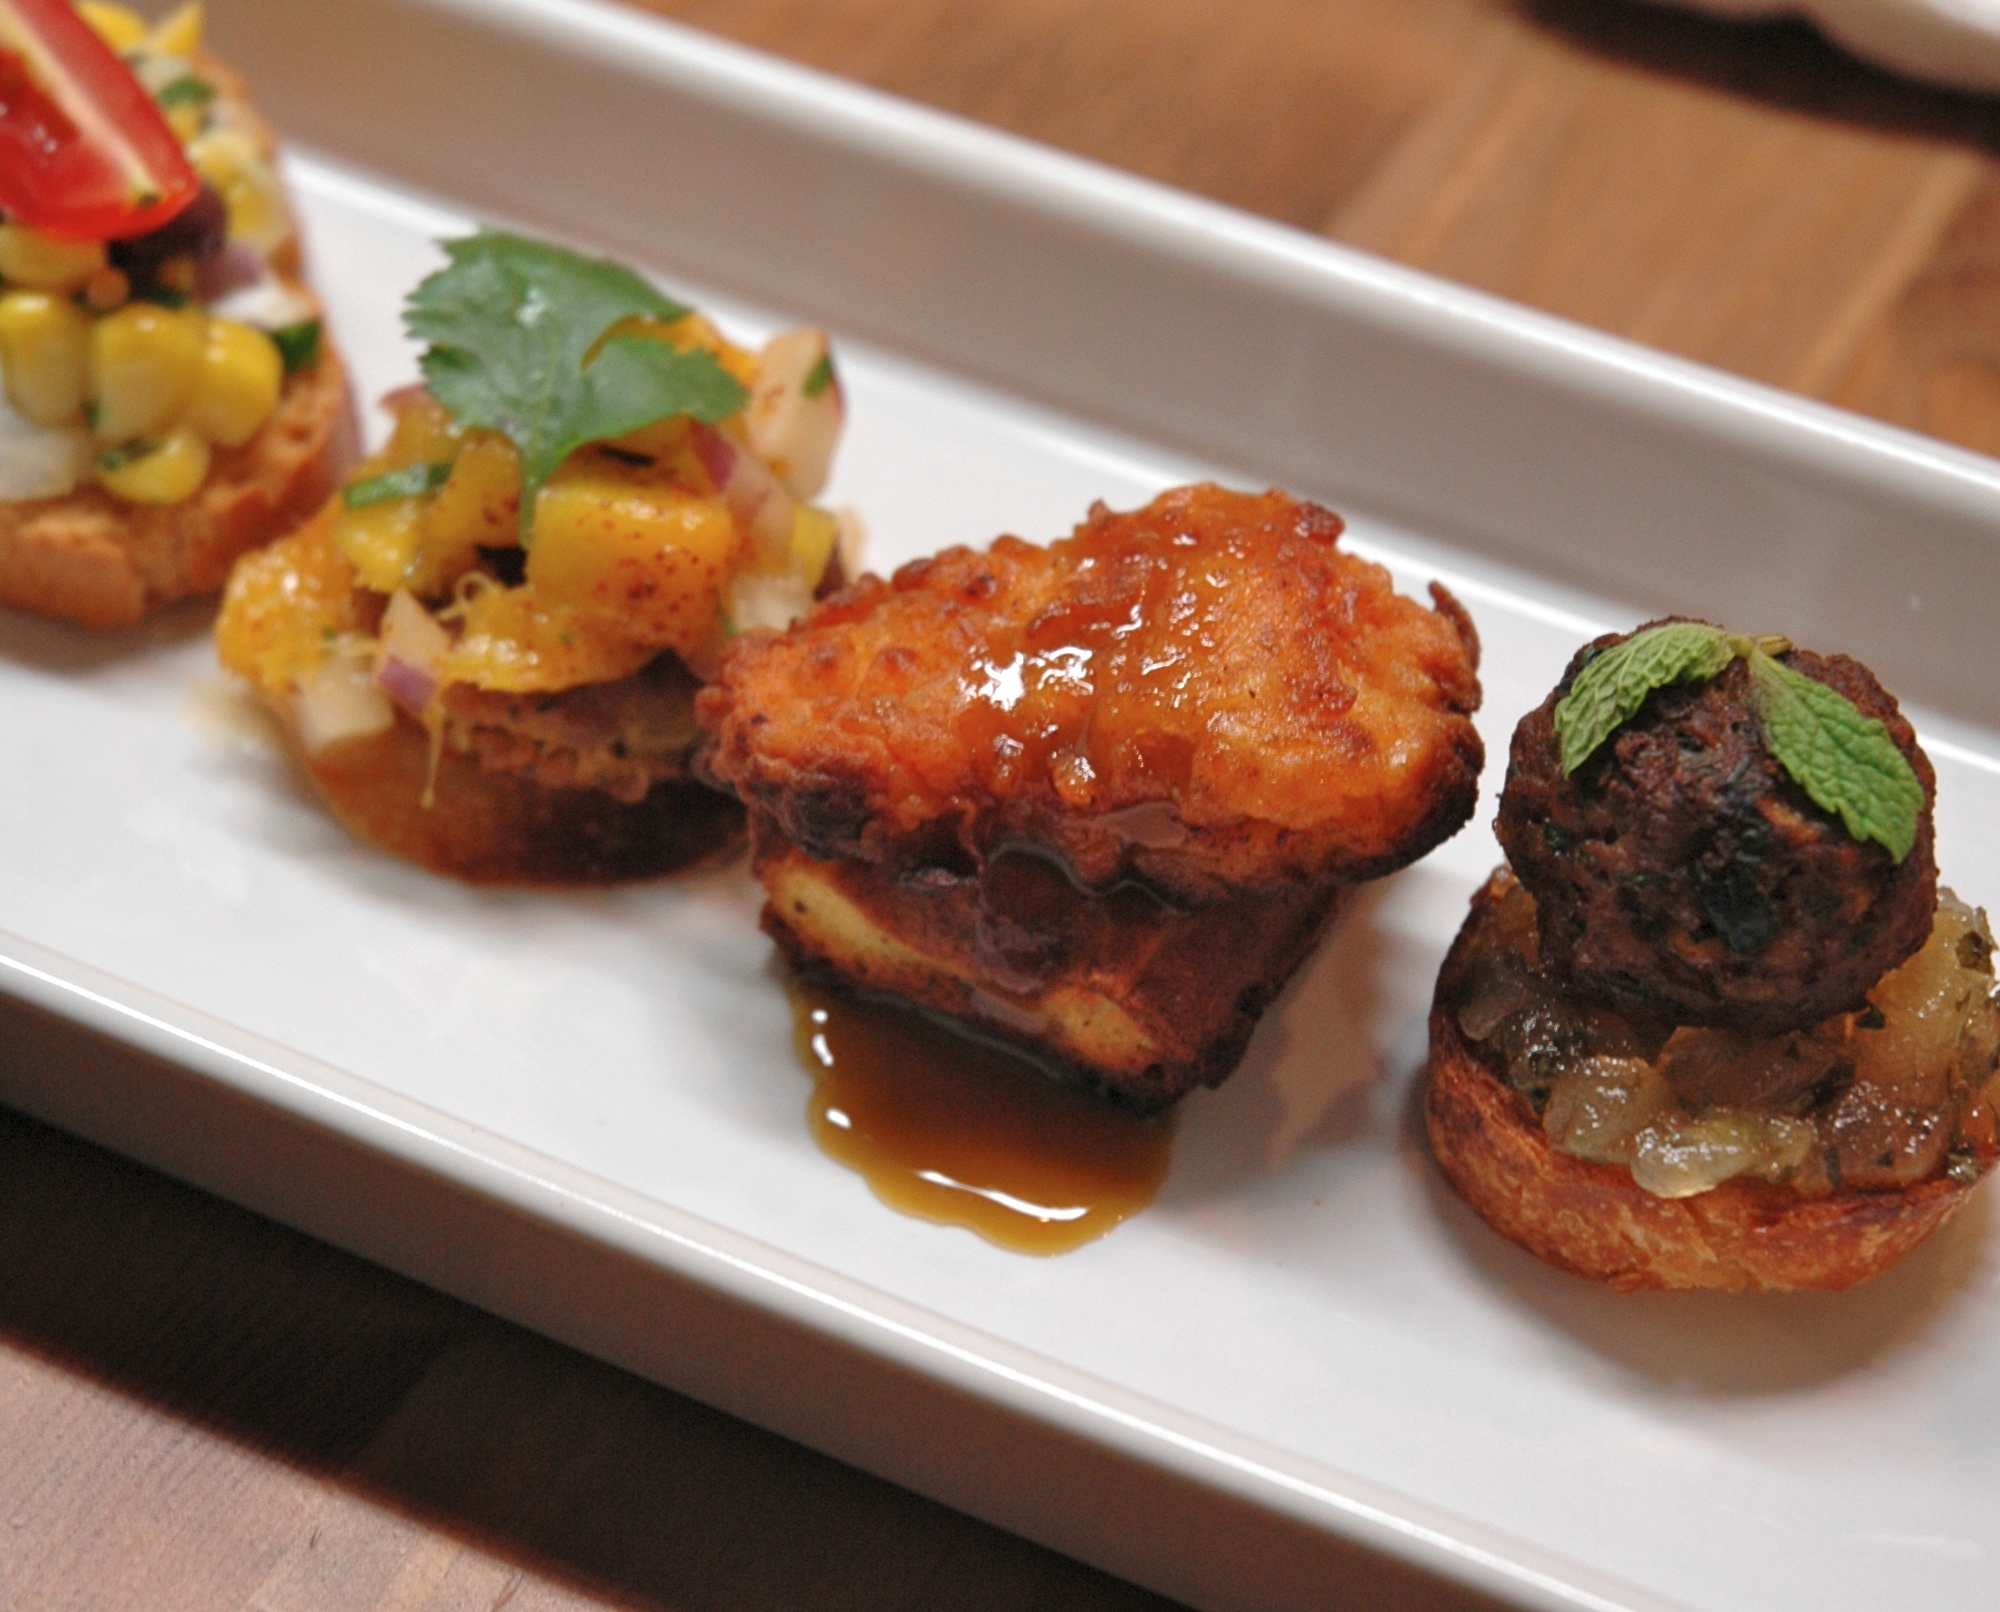 Quinoa Falafel with Mango Radish Salsa, Fried Chicken with Scallion Cheddar Waffle and Lamb Meatball with Apple Jalapeno Jam